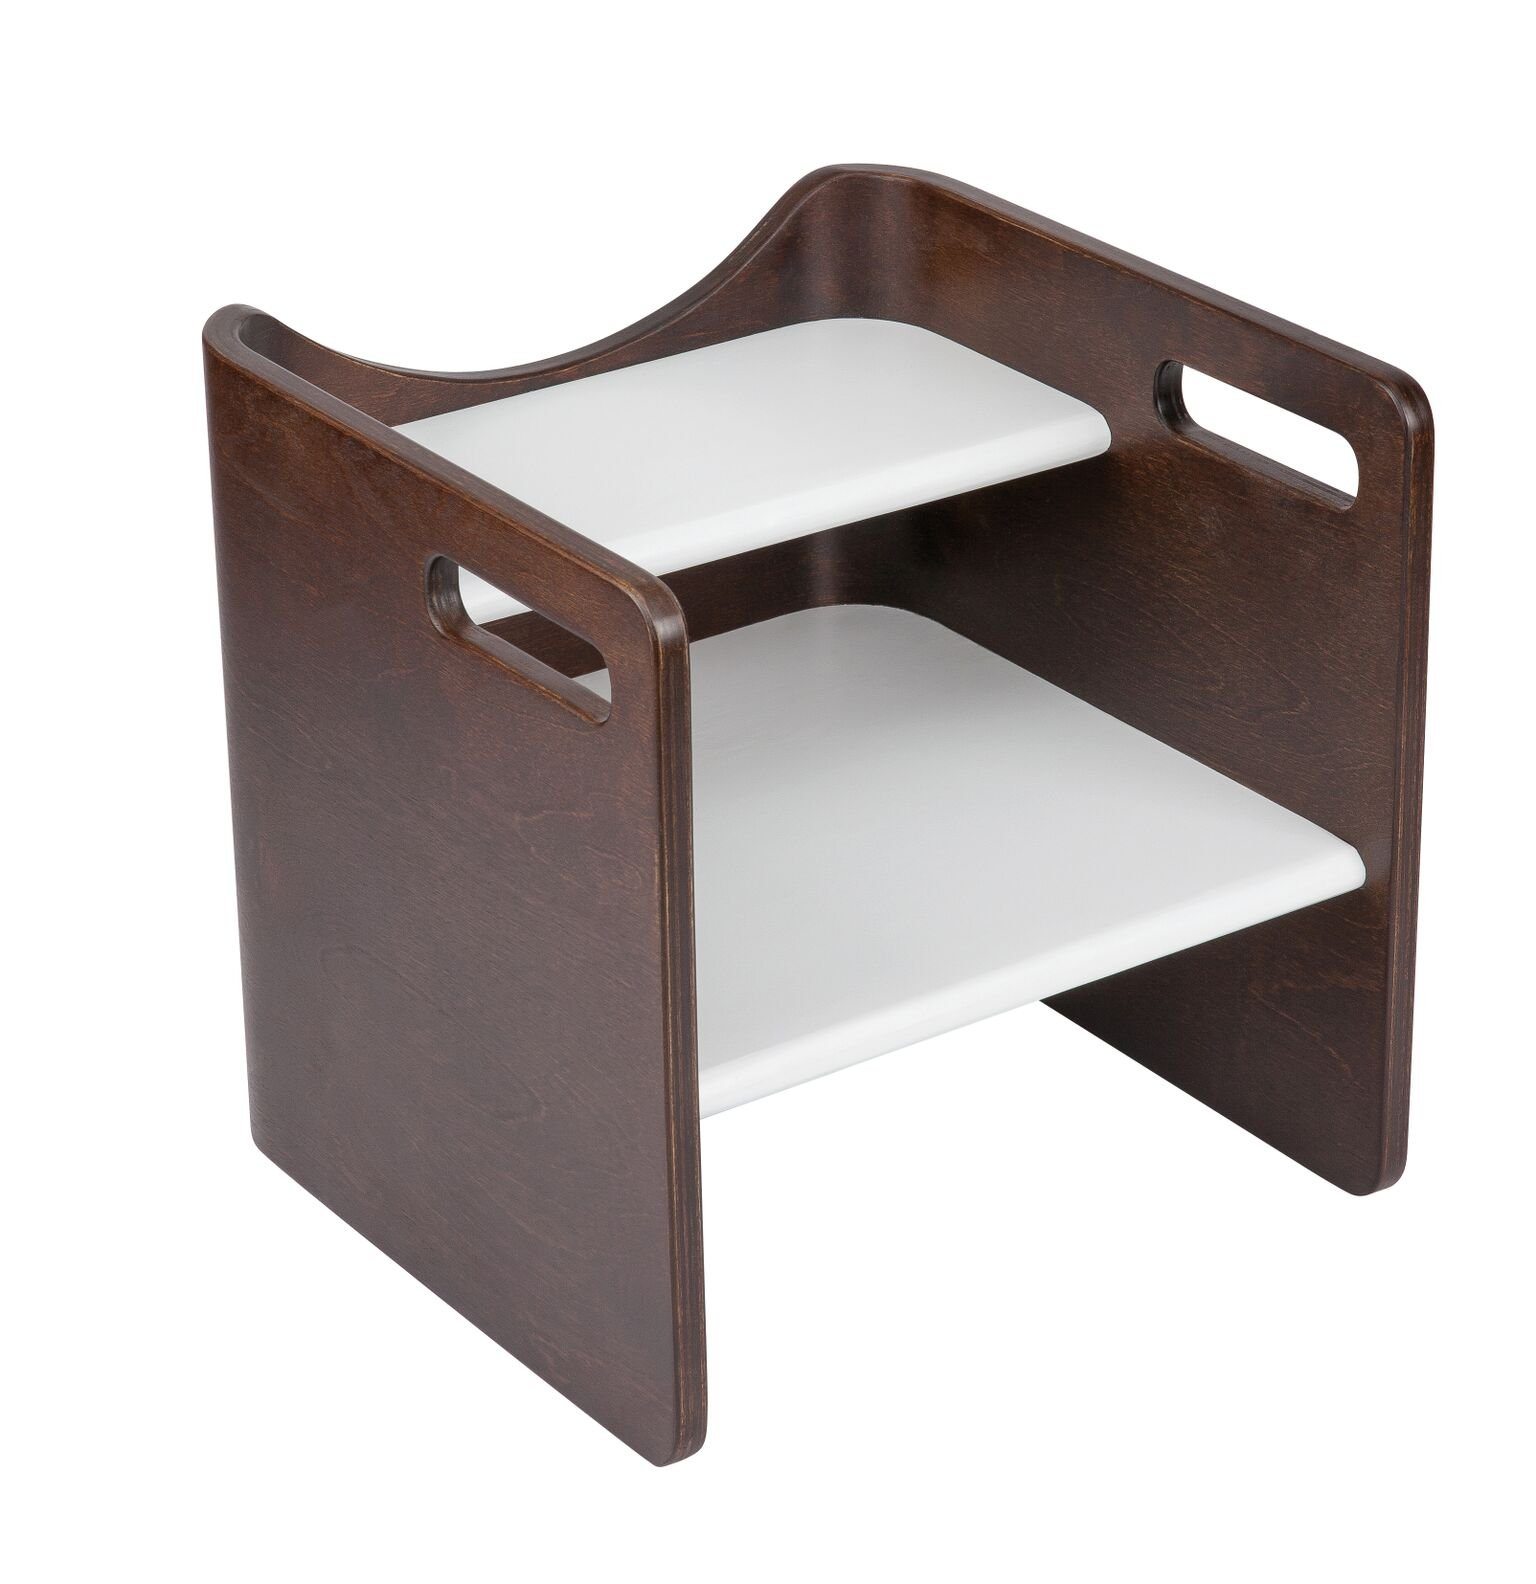 Bloom Pogo 3-in-1 Children's Step Stool, Solid Wood, Made in Europe (Cappuccino/Brown)